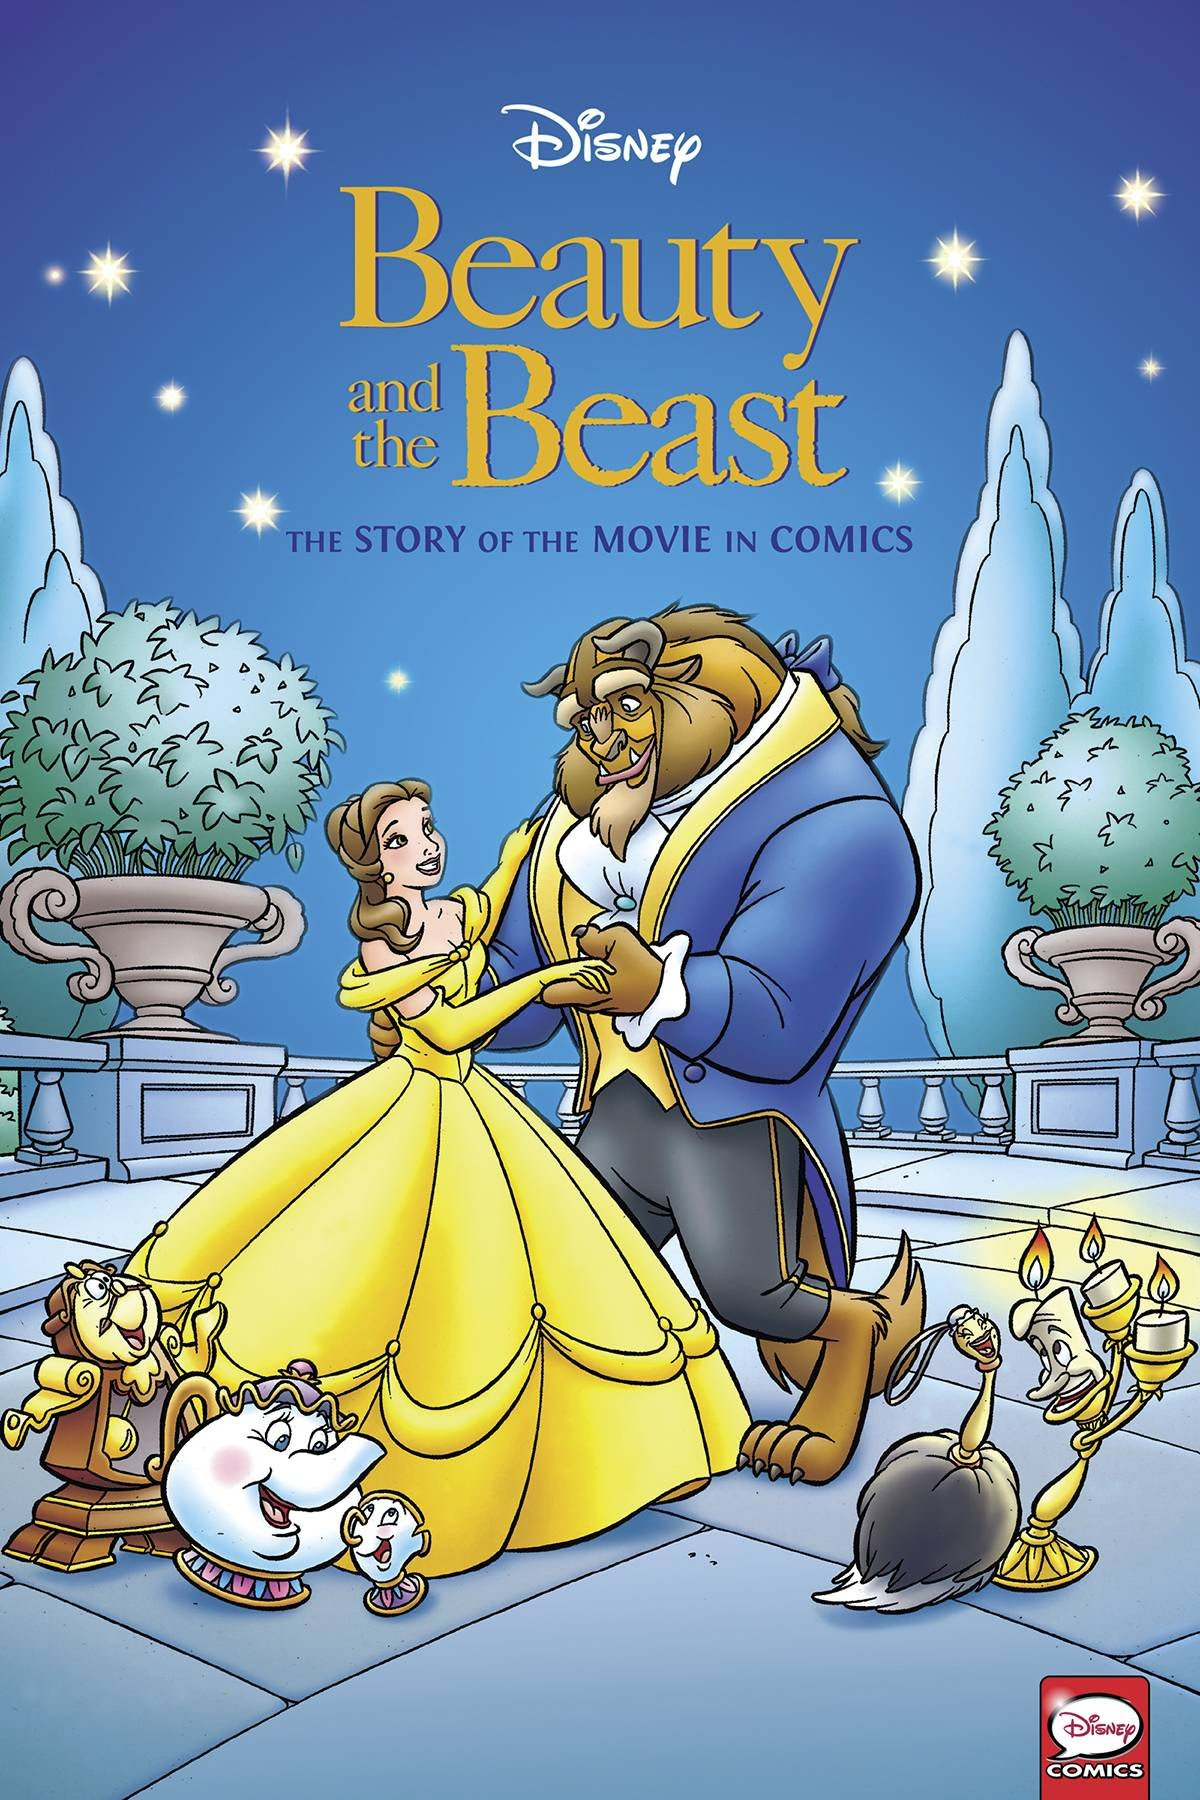 Disney's Beauty and the Beast | Story of the Movie in Comics